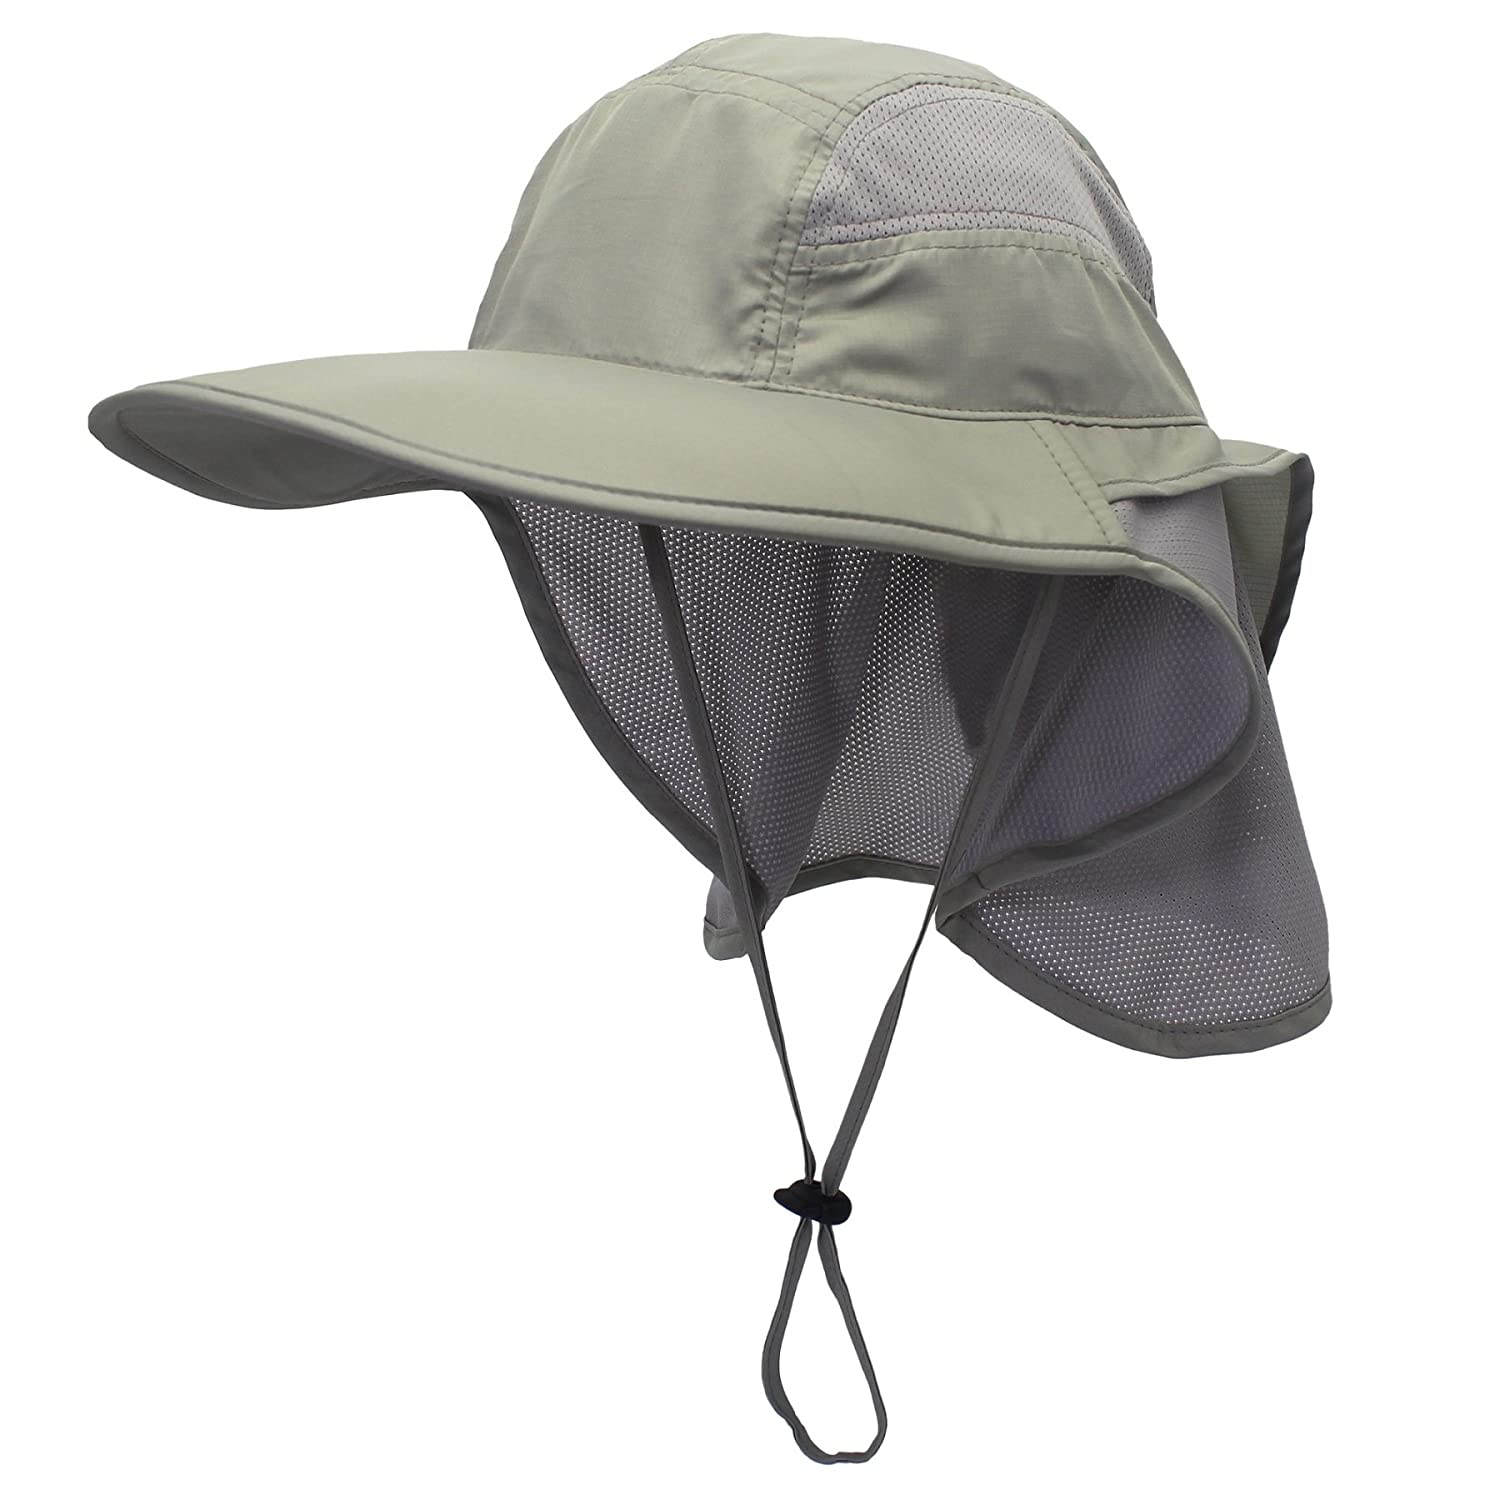 Decentron Outdoor Mens Neck Flap Sun Hat Large Brim Sun Protection Bucket Fishing Hats